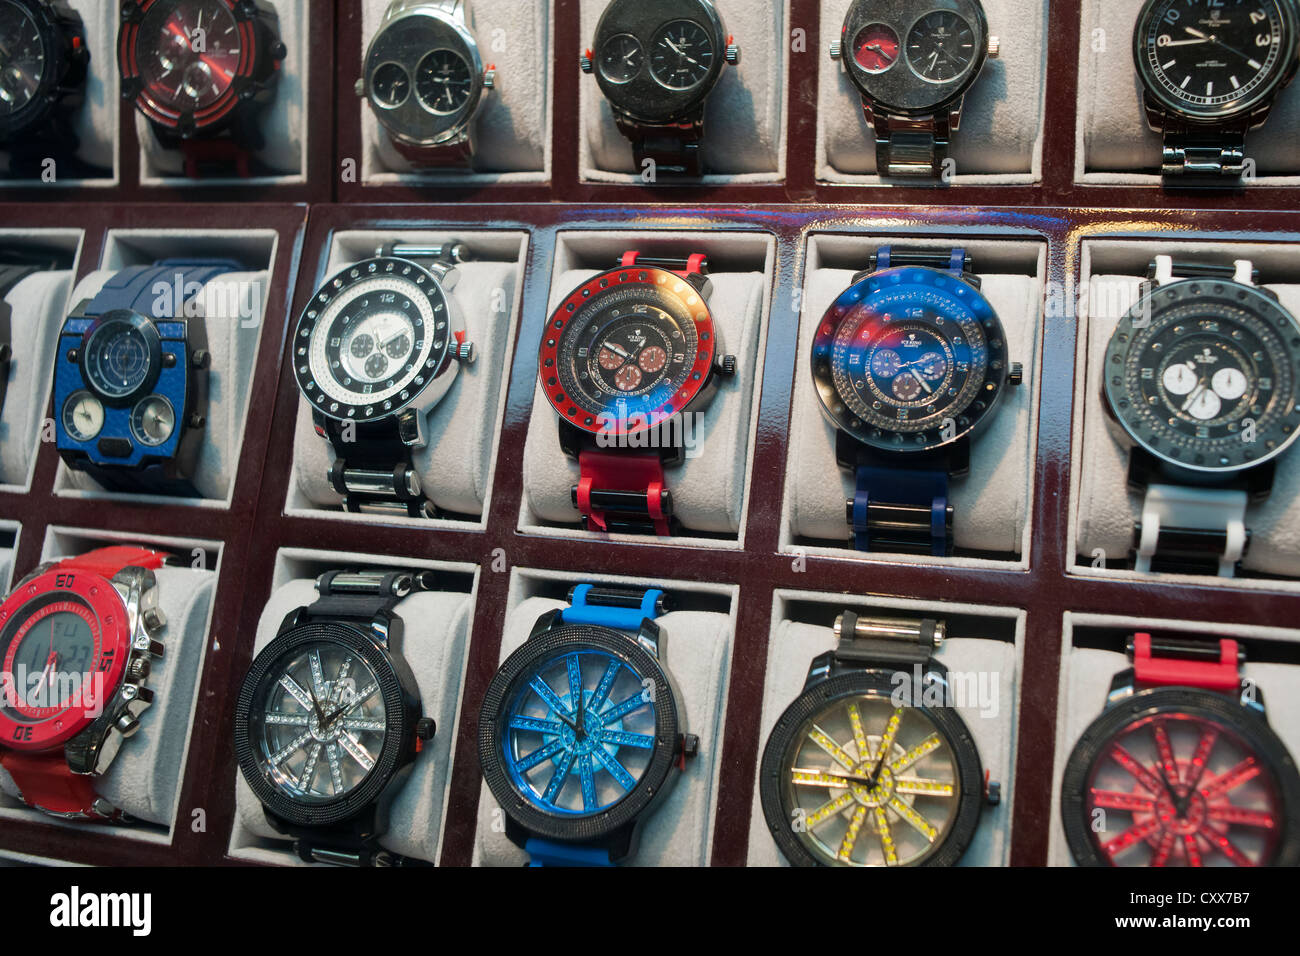 A display of hip-hop style watches with over-sized faces - Stock Image